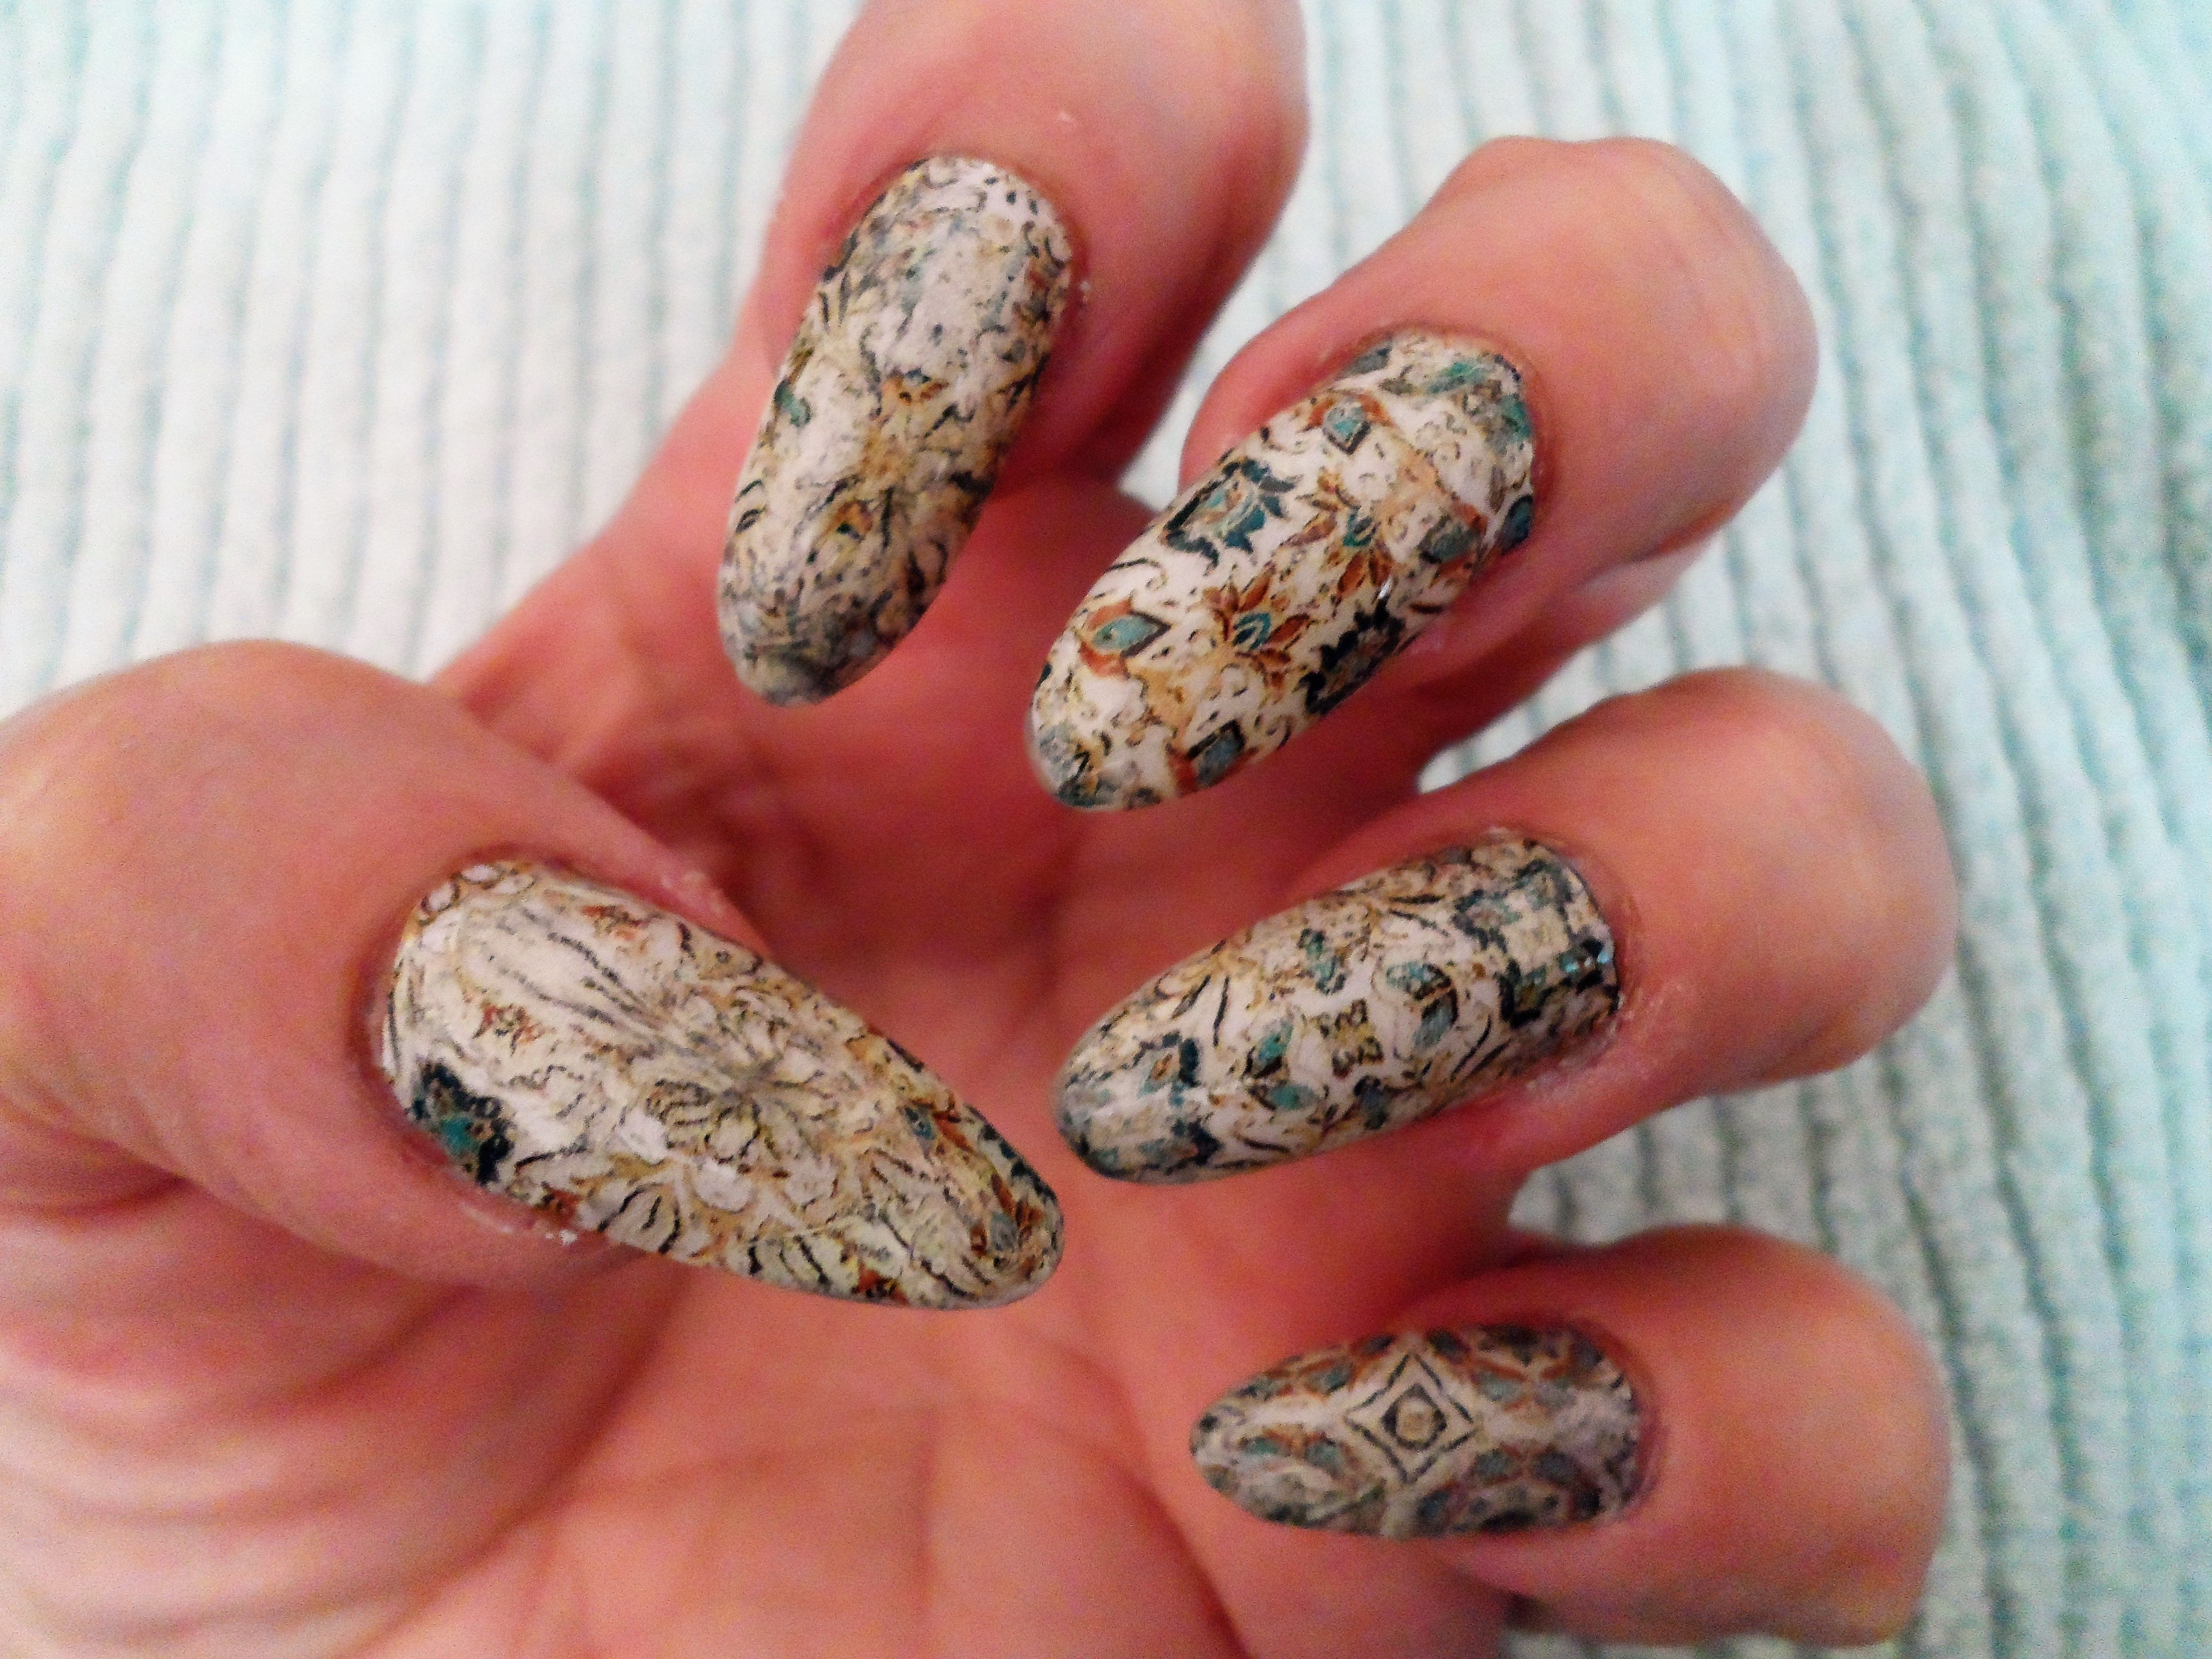 Vanilla Nail Art USA nail decals - find us on Facebook | Vanilla ...